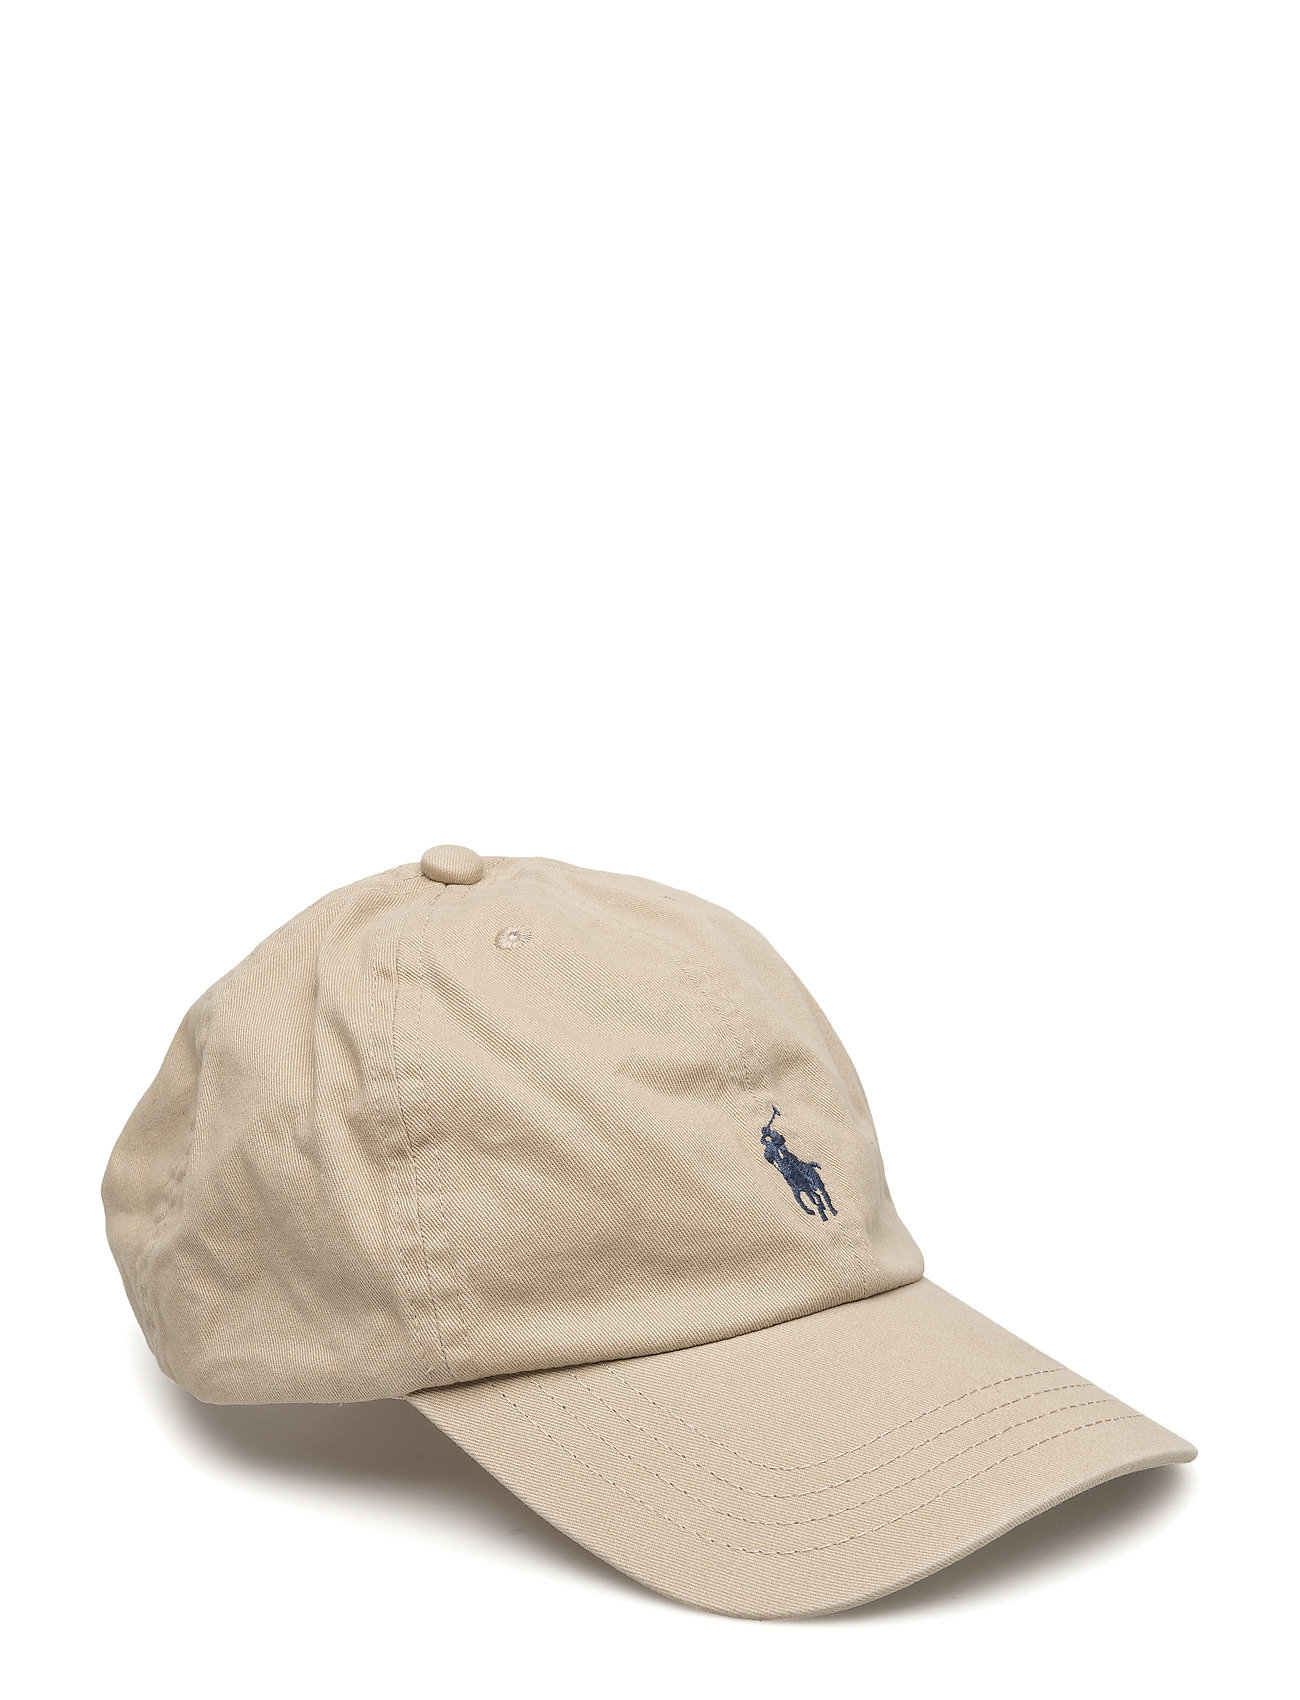 Ralph Lauren Kids Cotton Chino Baseball Cap - CLASSIC KHAKI